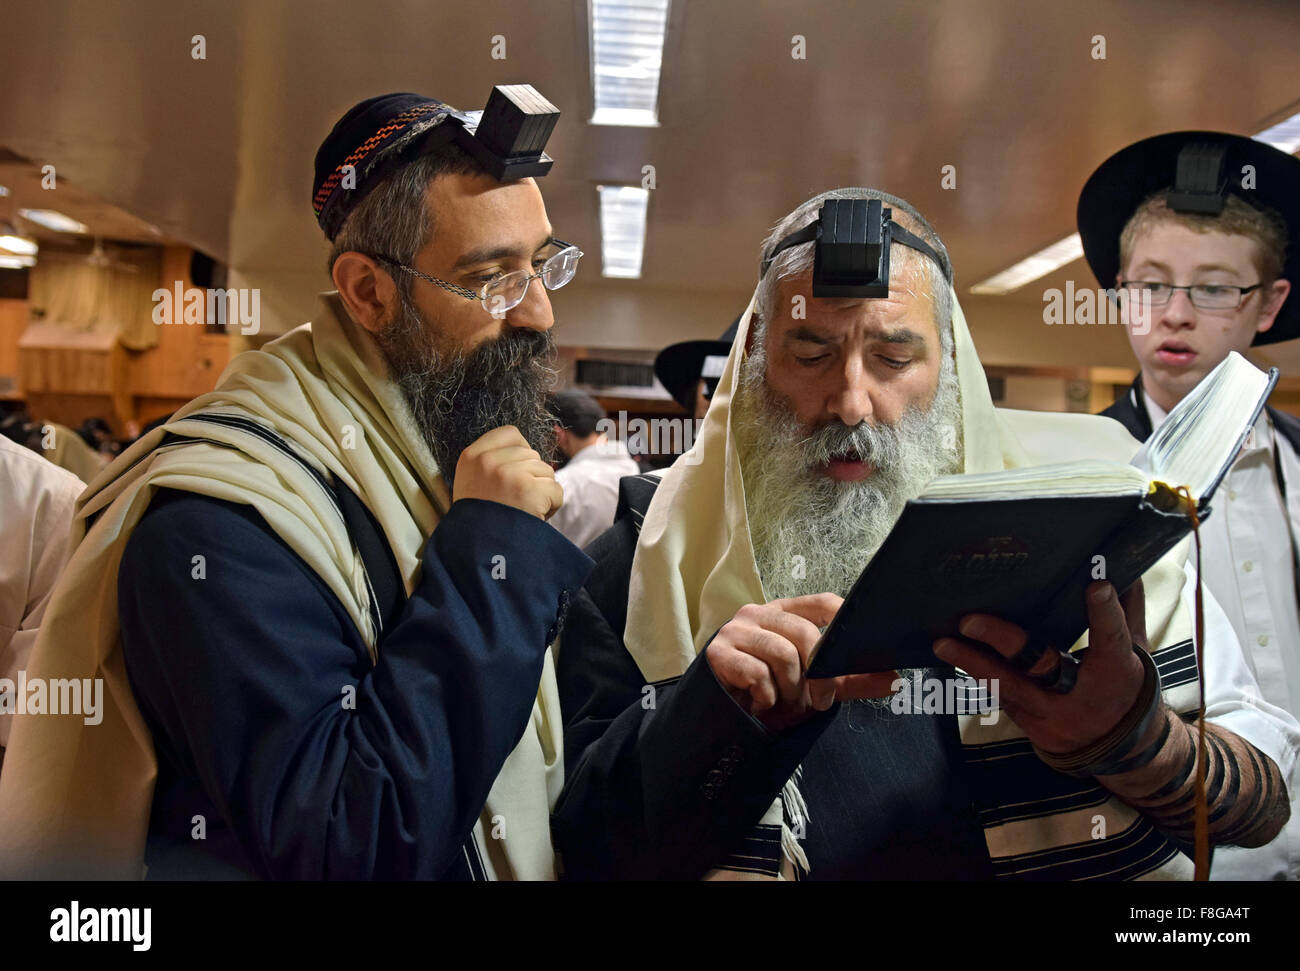 2 religious, Jewish men discussing a passage in a prayer book at morning services at a synagogue in Brooklyn, New - Stock Image